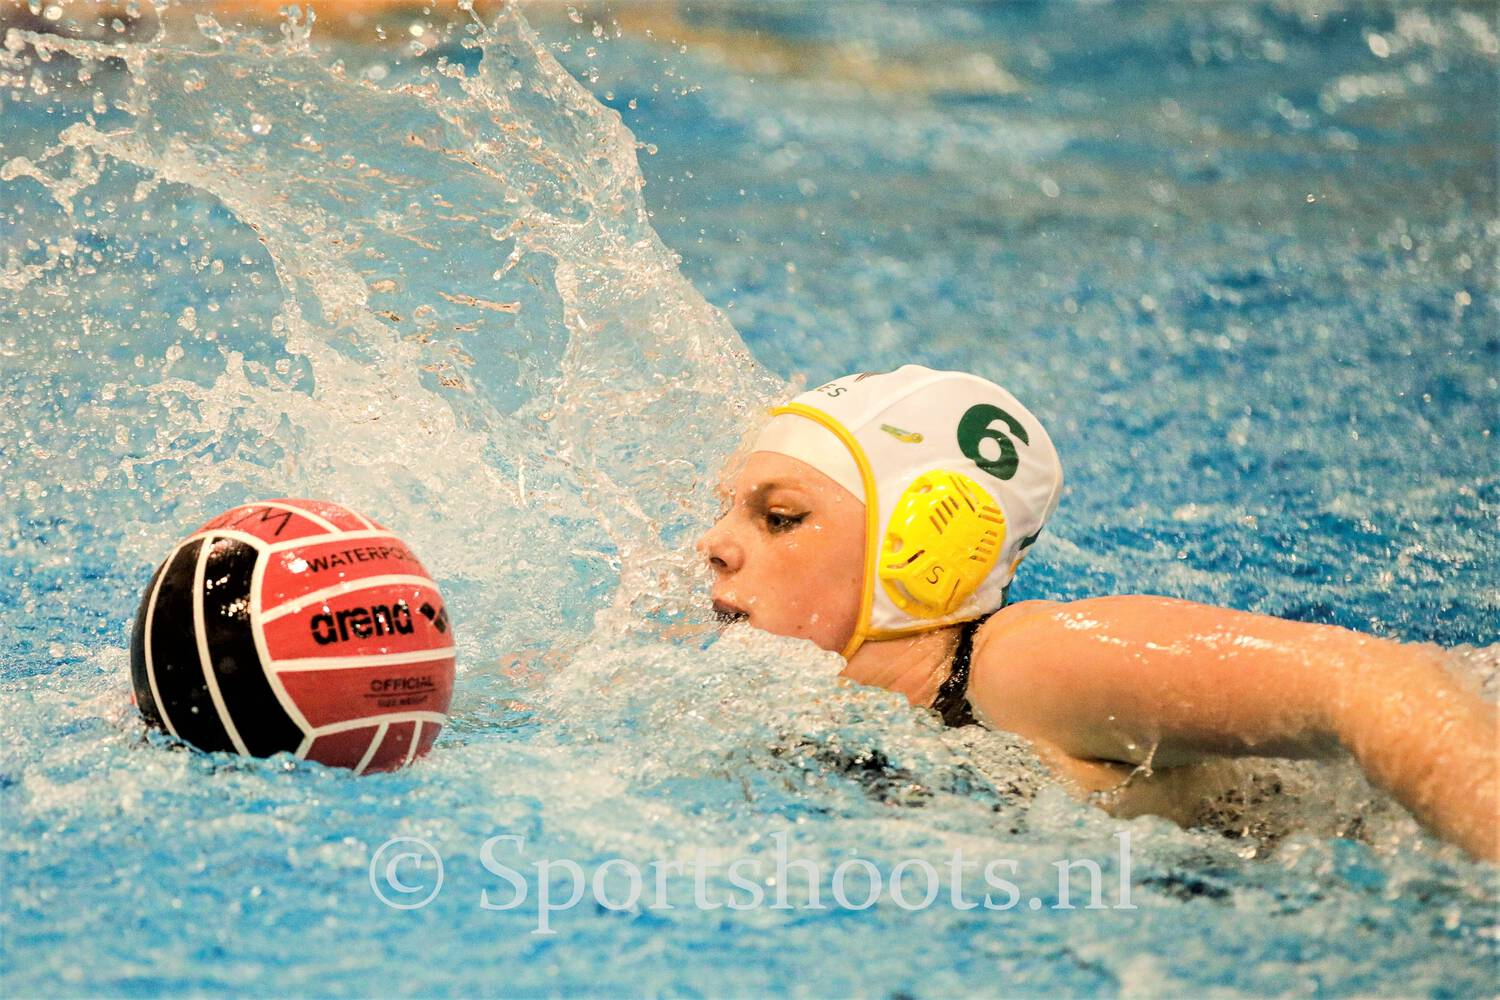 Waterpolo, teambuilding staat centraal